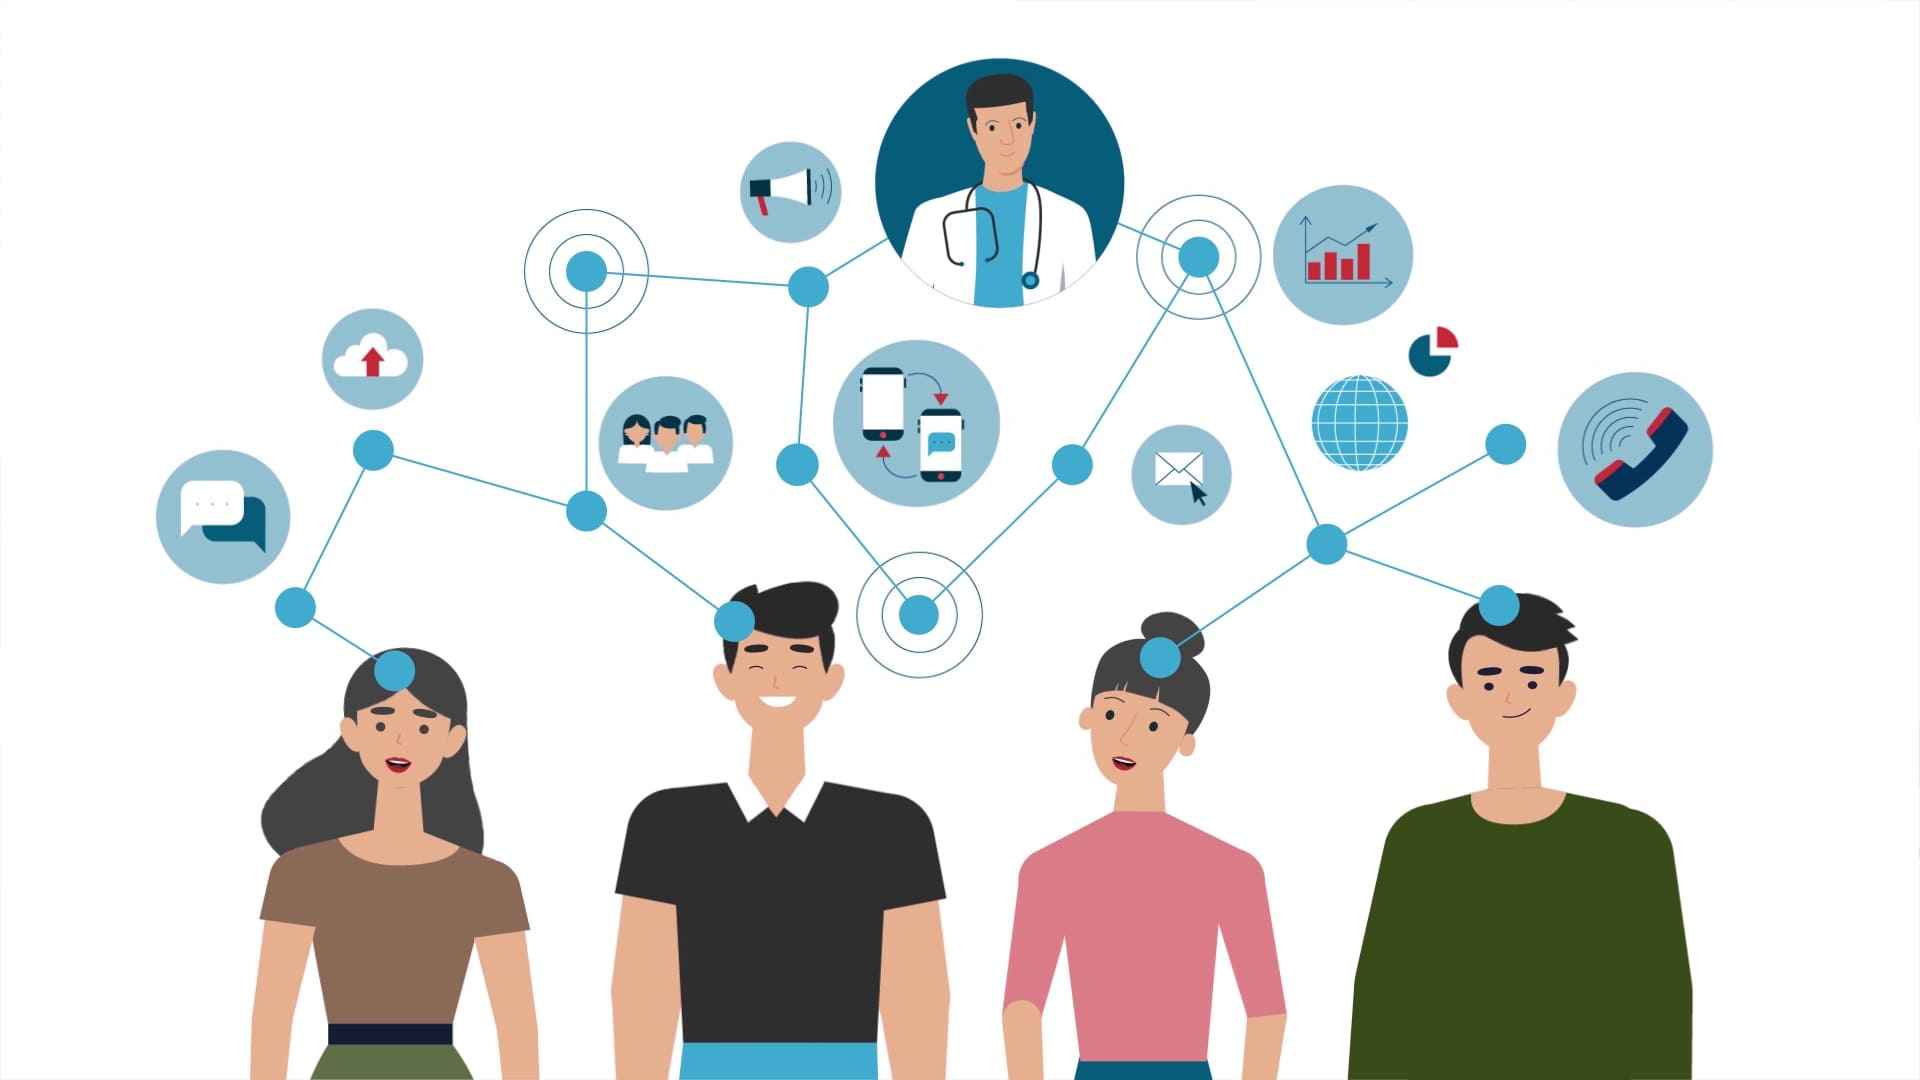 Communication between patients and doctor - 2d animation